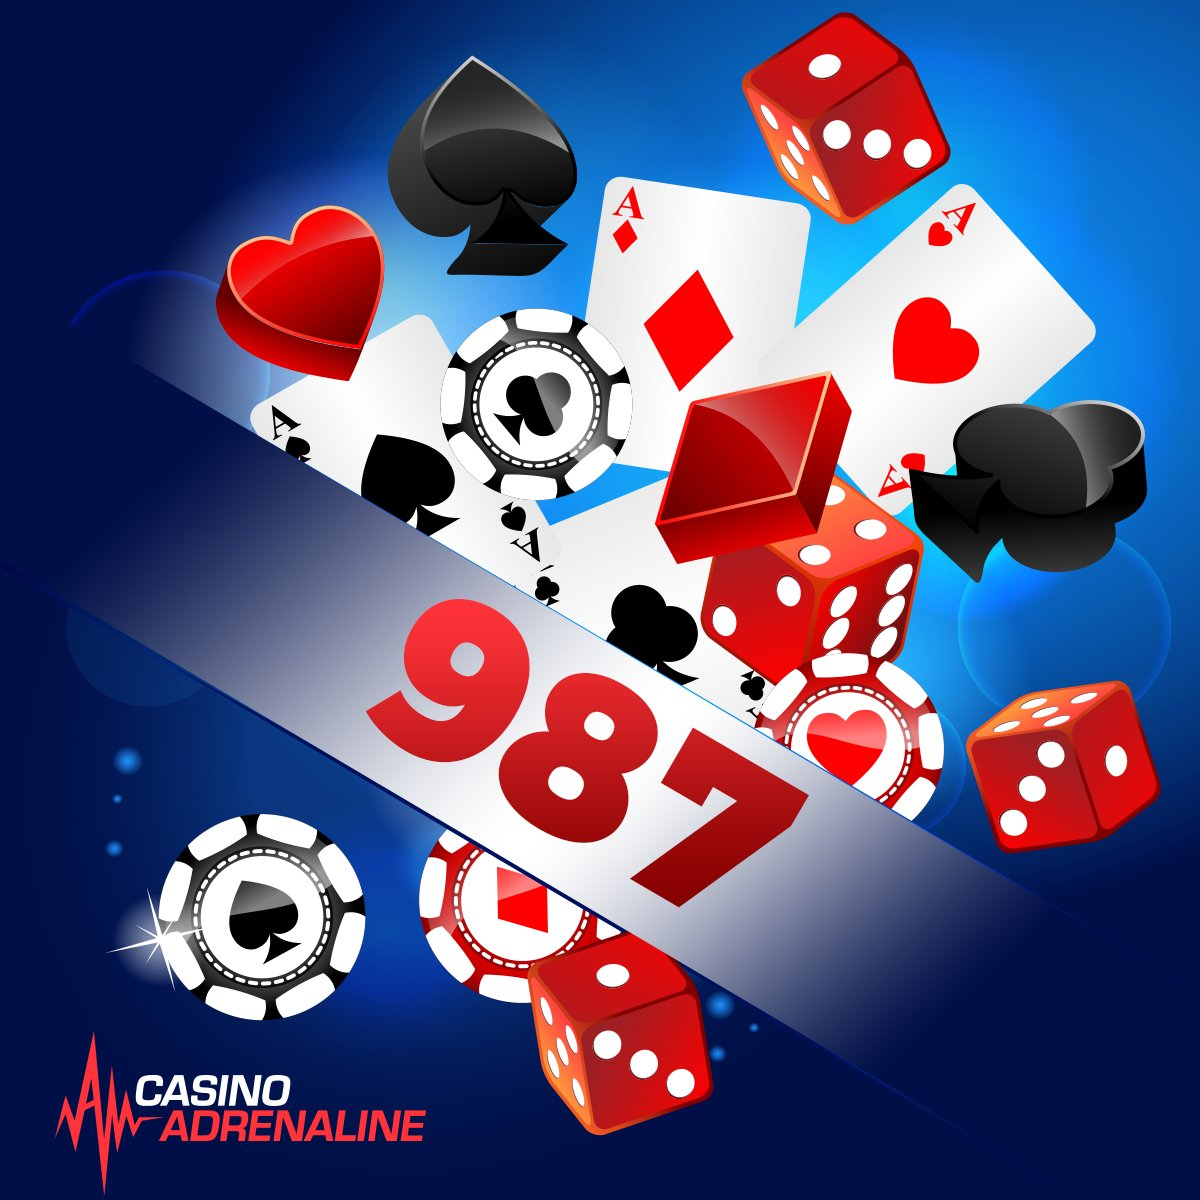 test Twitter Media - Did you know that on Casino adrenaline there is more than 987 different games to play?  https://t.co/oSXfIB6U5E https://t.co/jLpm1aT8Nz